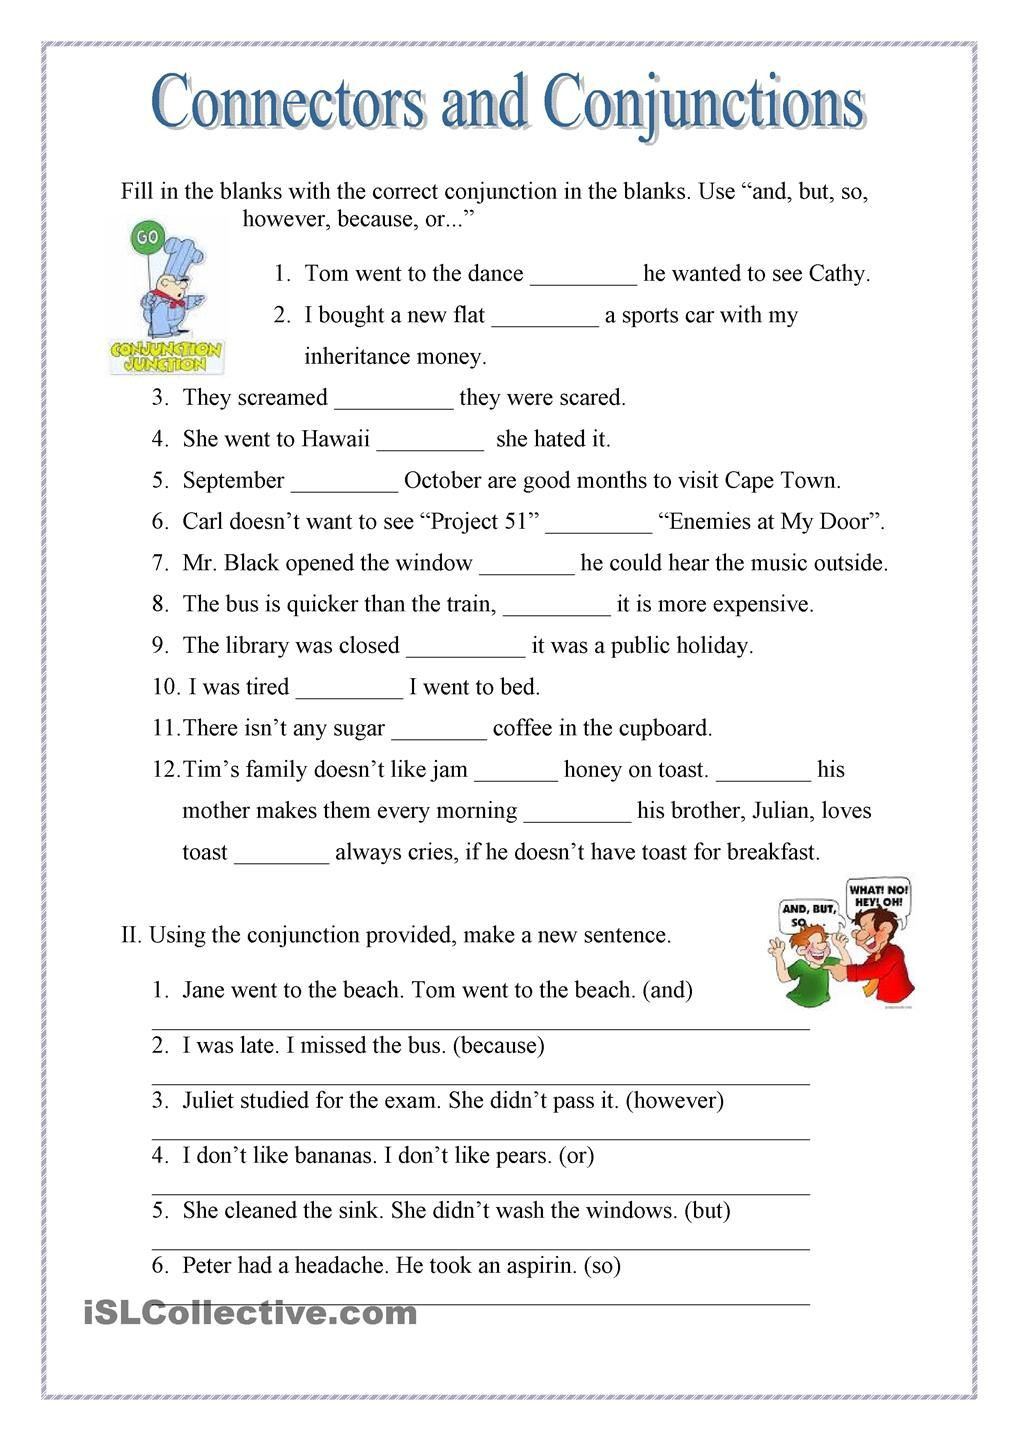 Conjunctions Worksheets 5th Grade Conjuctions and Connectors